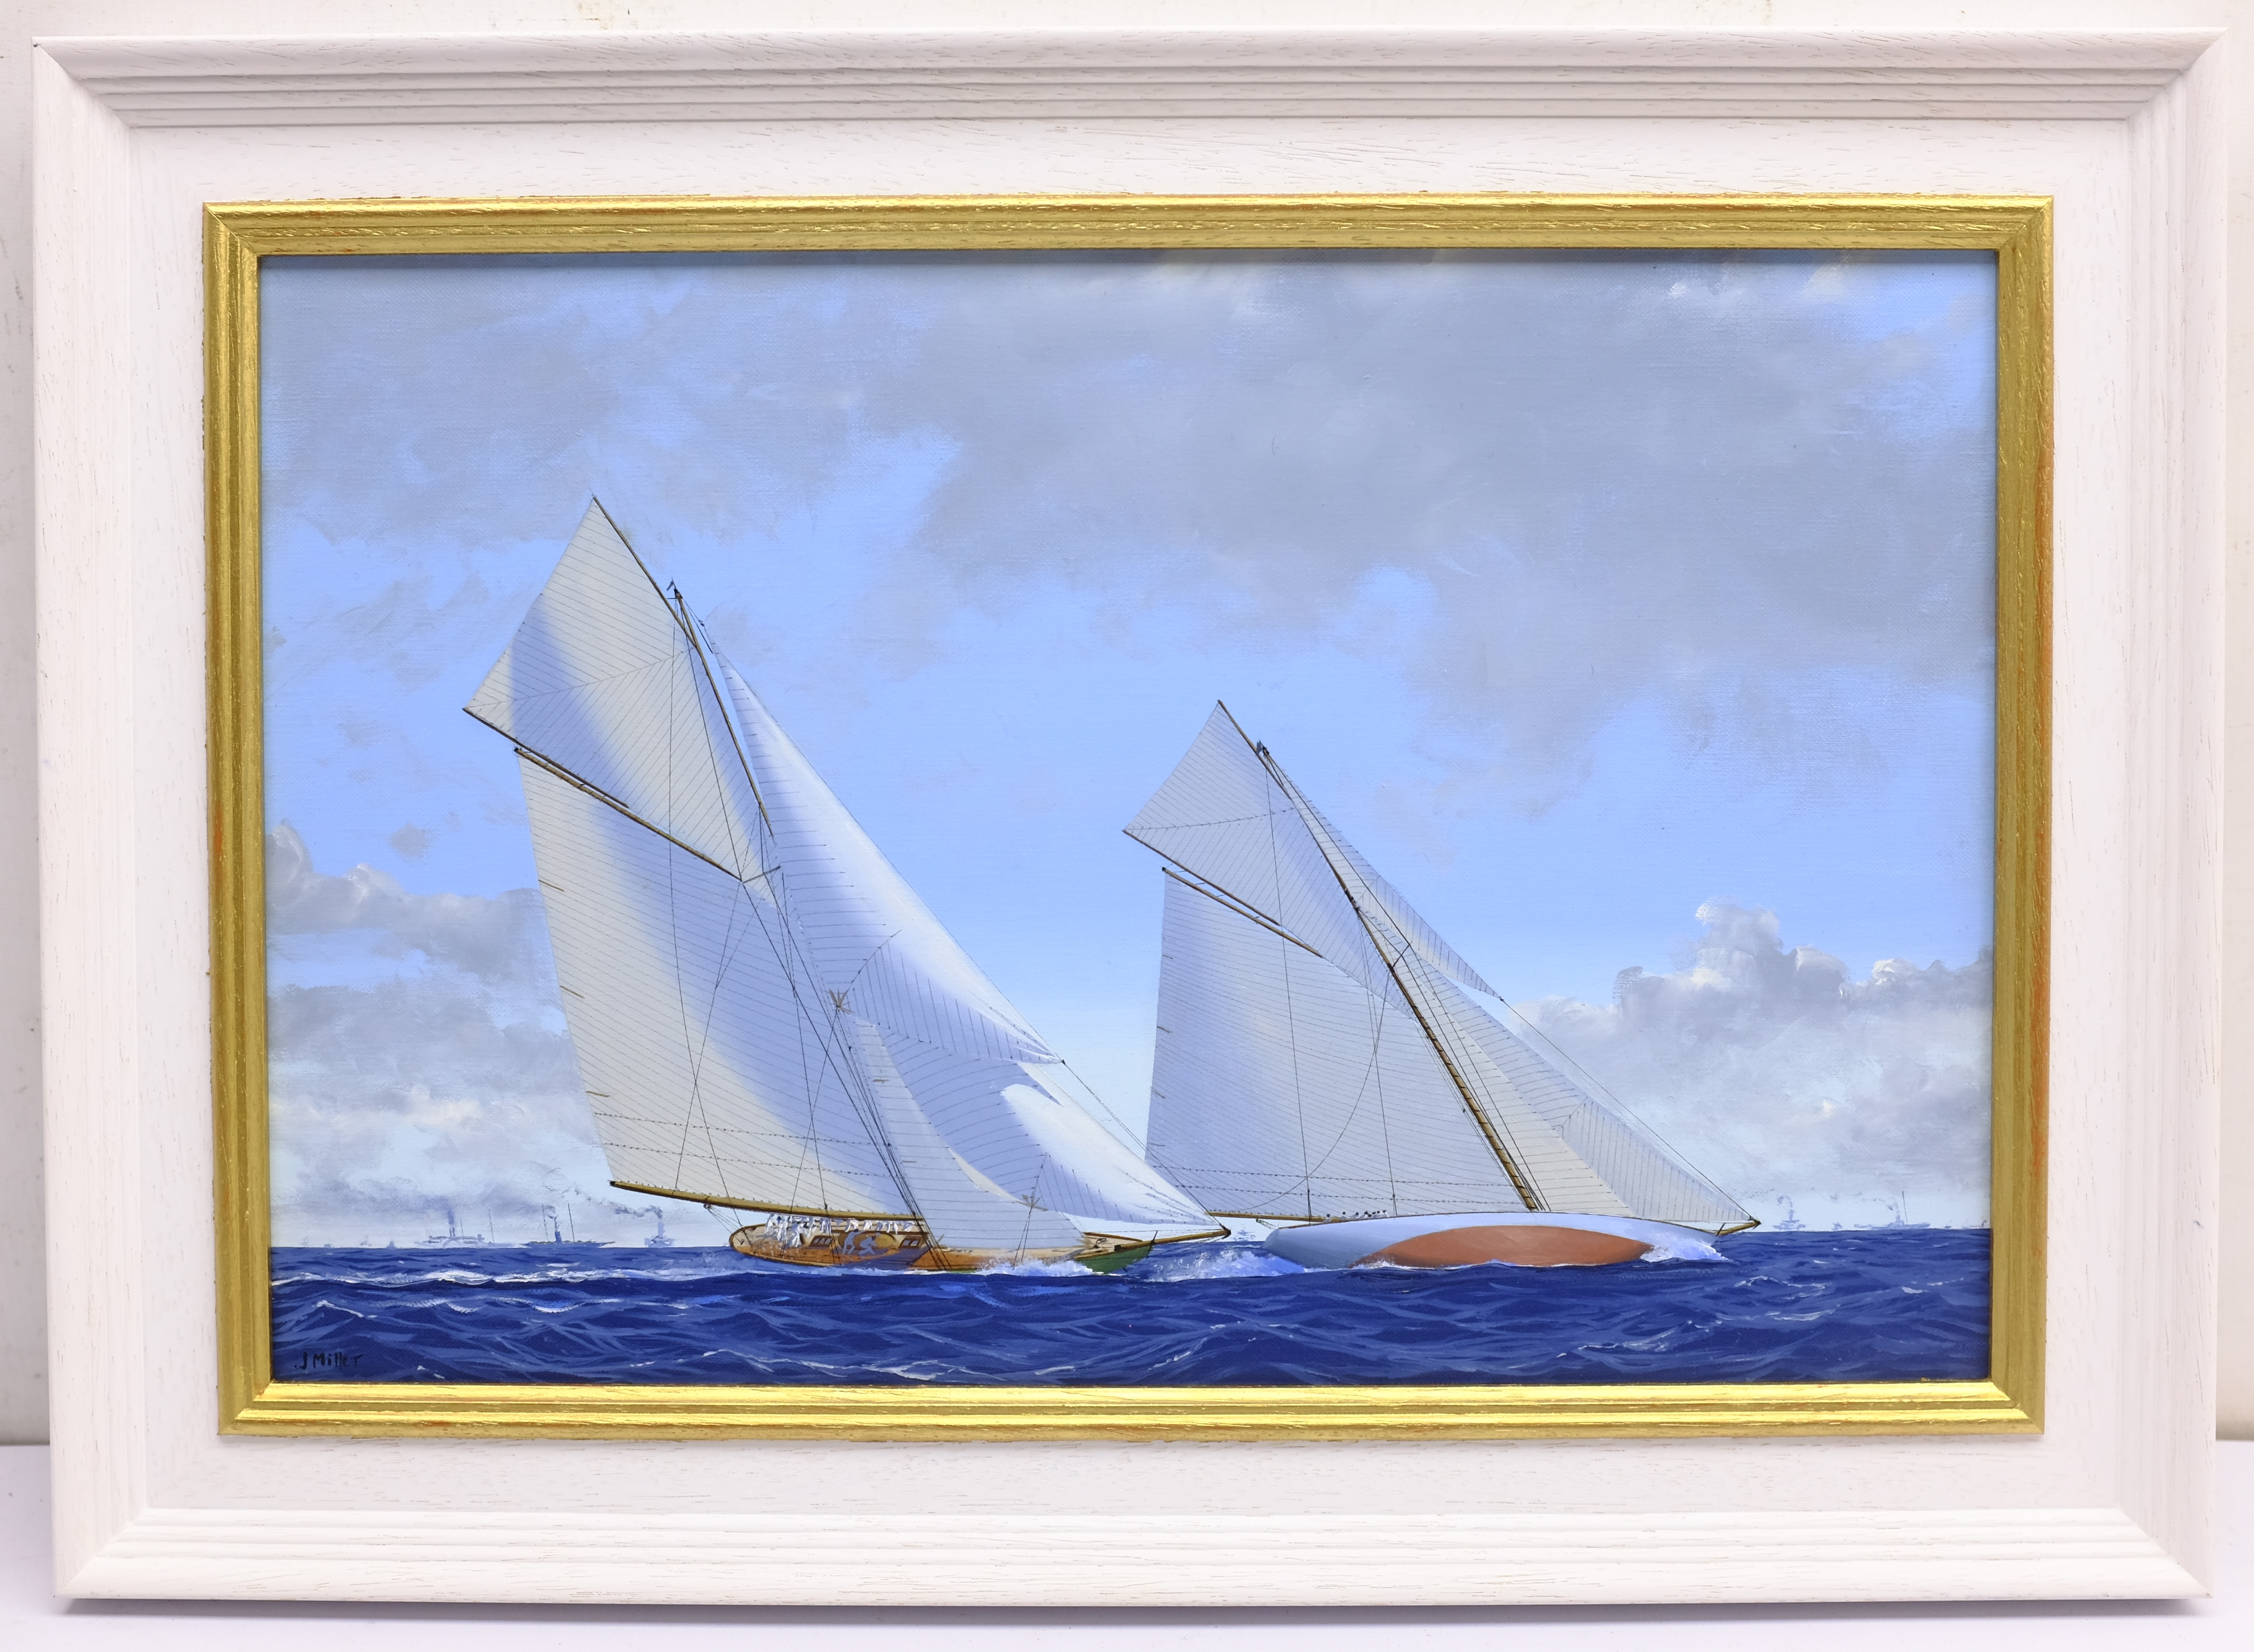 James Miller (British 1962-): 'Shamrock II' & 'Columbia' in the America's Cup Series 11th challenge - Image 4 of 4